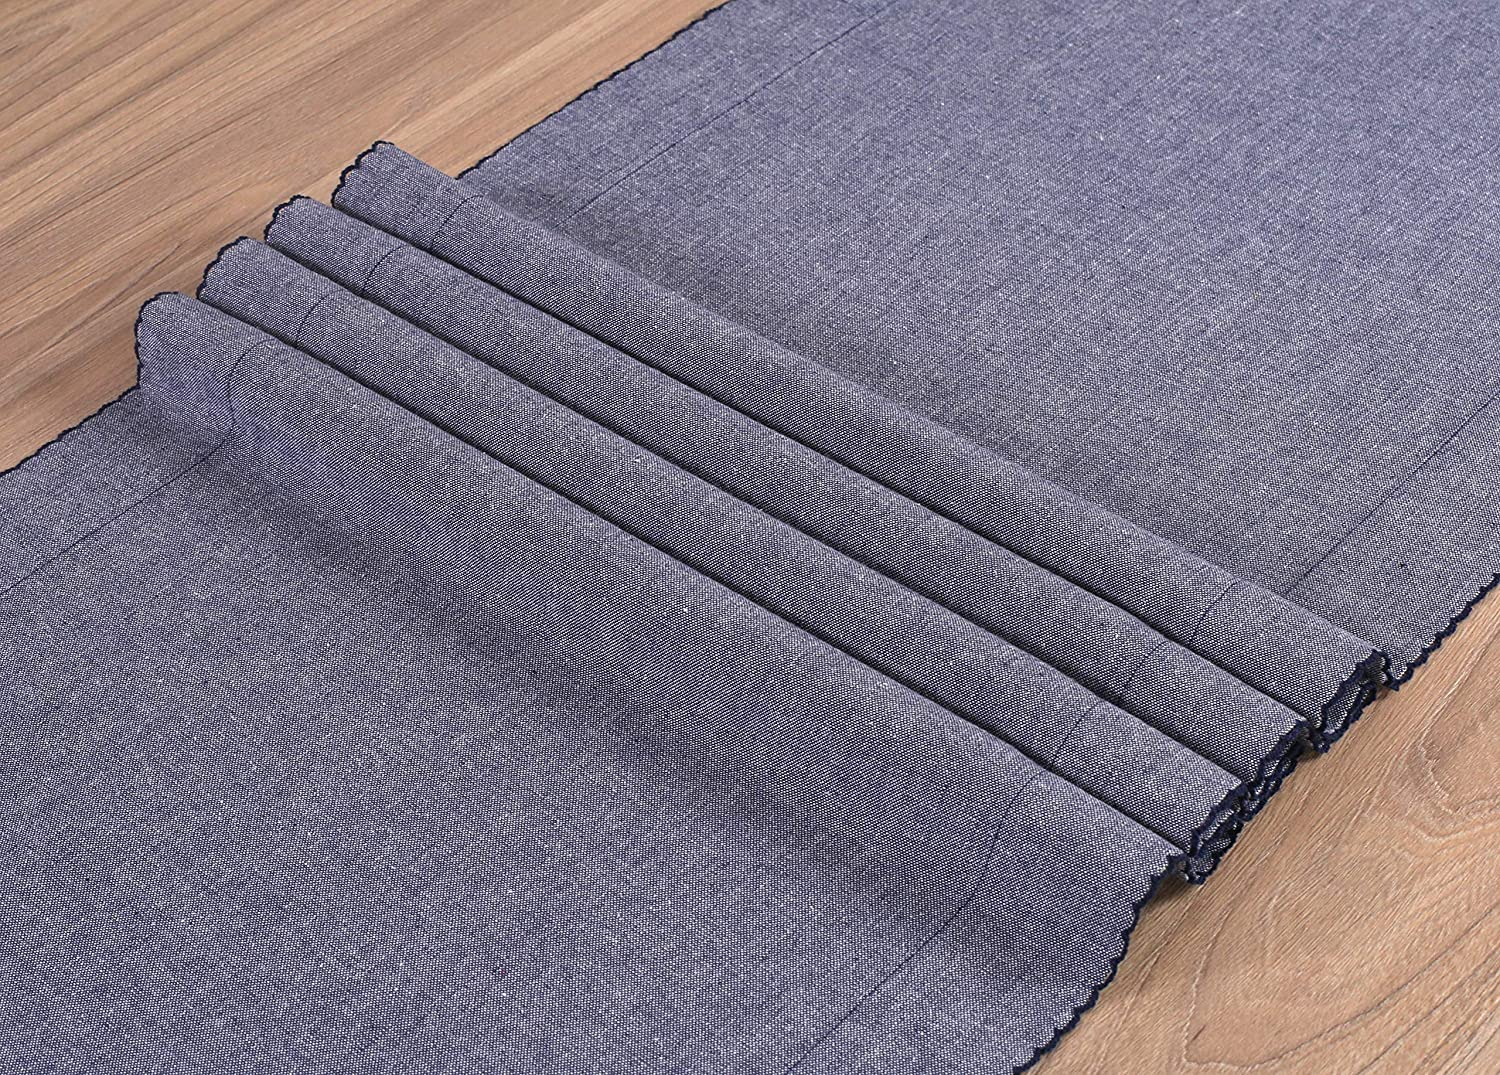 Table Runner 72inch,100/% Cotton Chambray Fabric with Picotted Decor at Edges,Decorative Table Runner,Farmhouse Table Runner,Rustic Bridal Shower Decor Table Runner,Wedding Table Runner-16x72 Charcoal